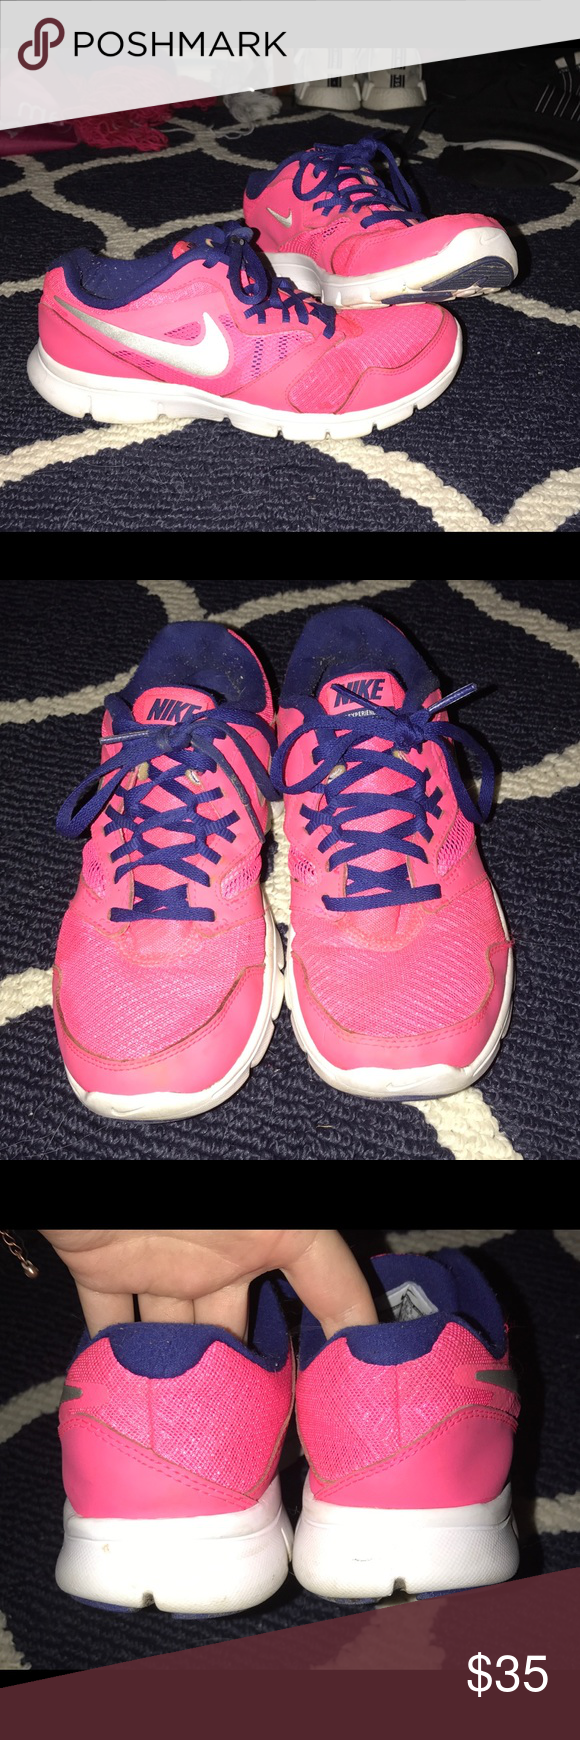 size 40 26e14 8a78b Women s Nike Running Shoes Hot Pink and Navy Blue. Only worn for hikes (so